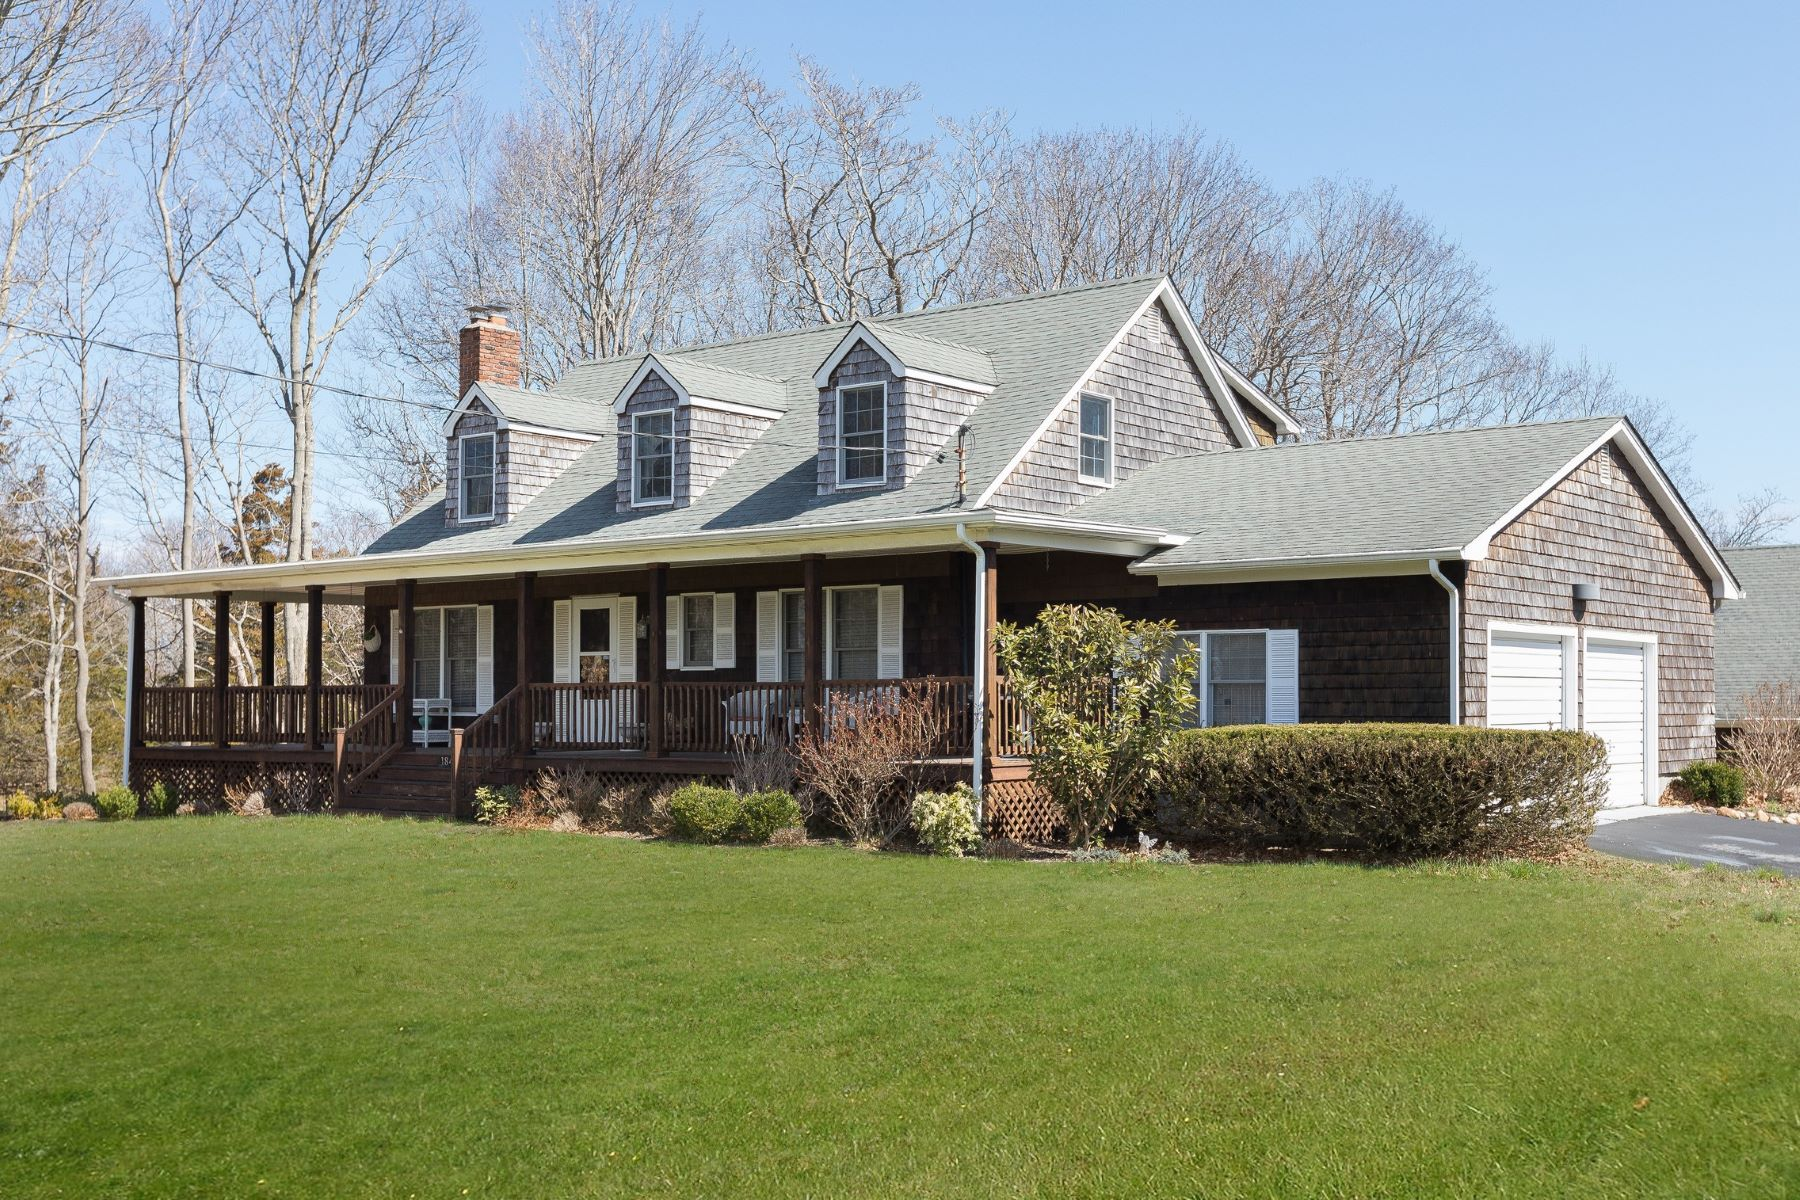 Single Family Homes for Sale at Aquebogue 184 Phillips Ln Aquebogue, New York 11931 United States